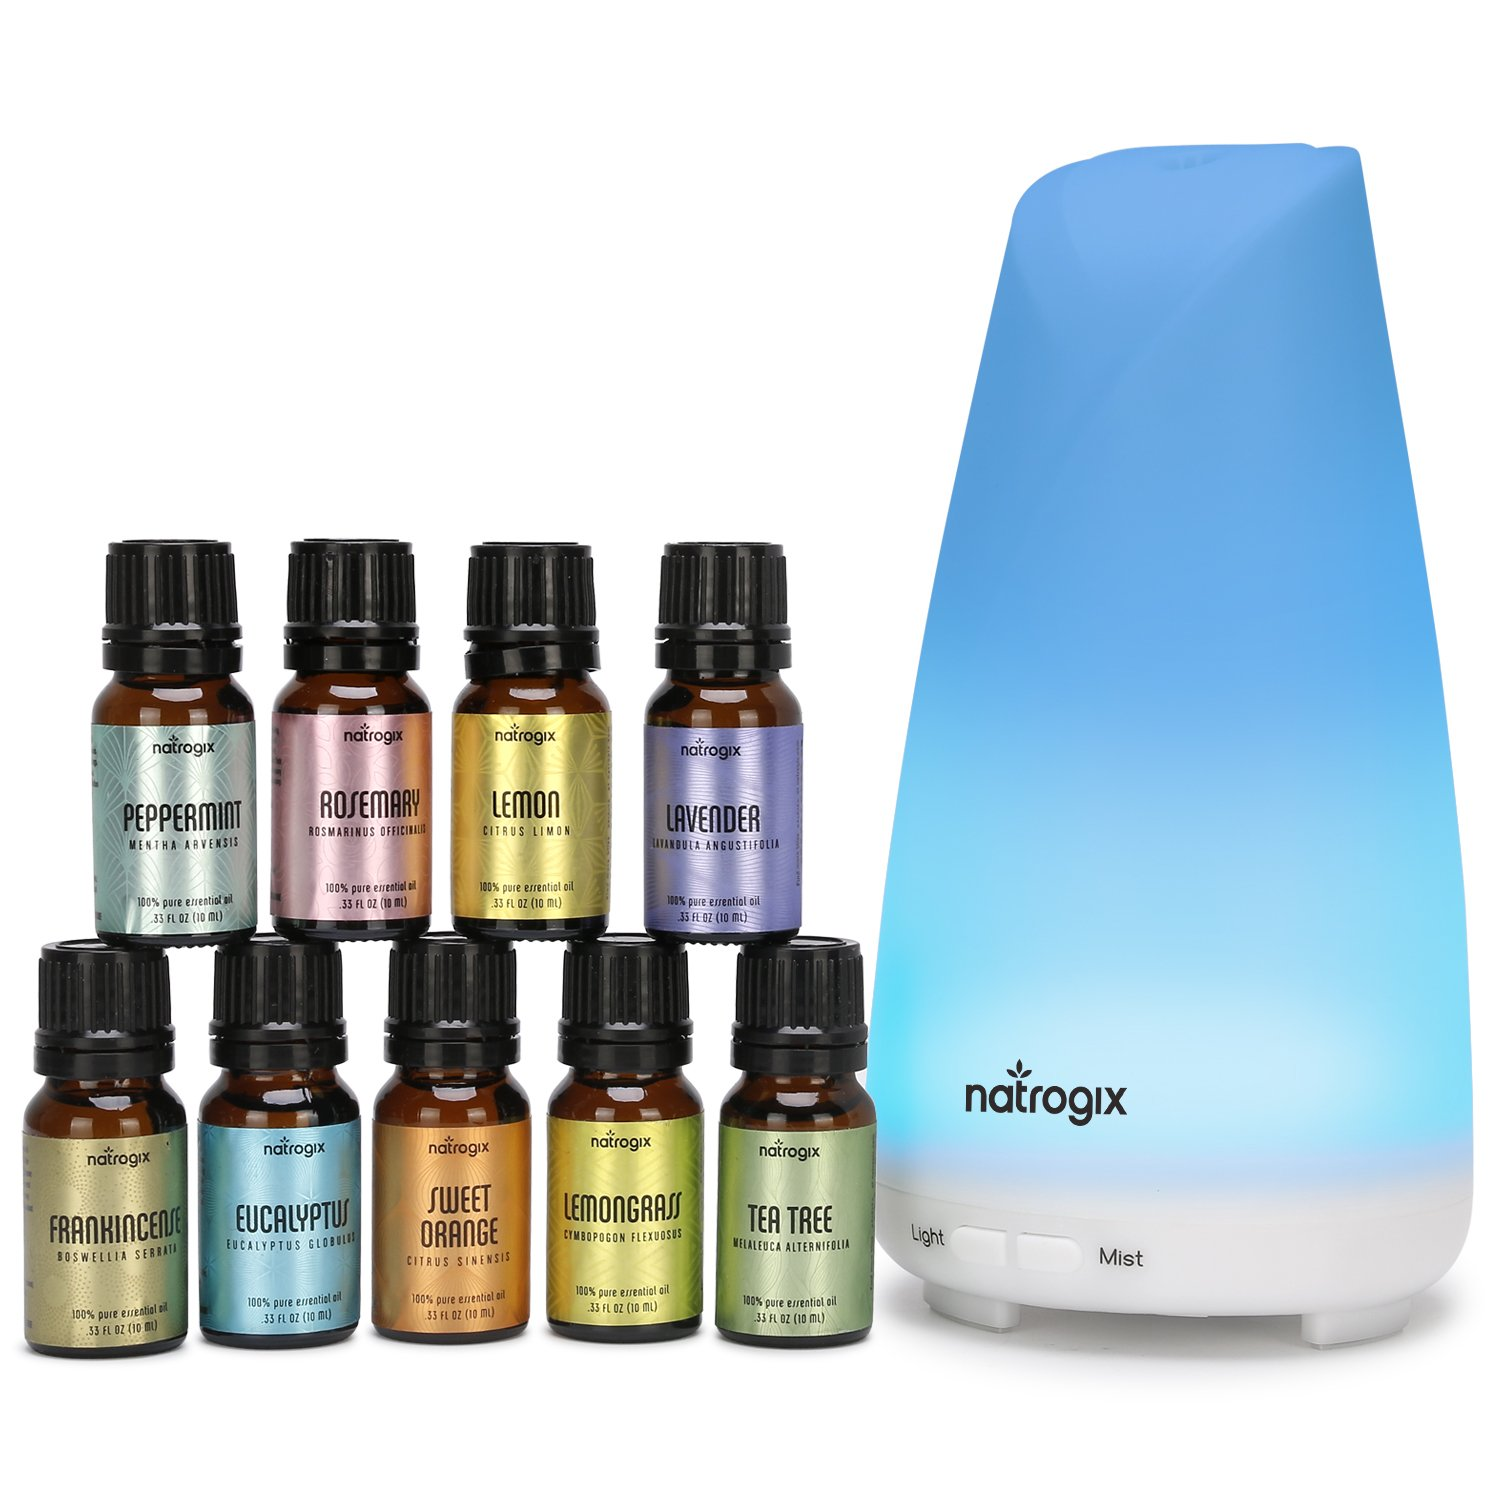 Essential Oil Diffuser 150ml by Natrogix Totem - Cool Mist Aroma Humidifier for Aromatherapy 7 Colors with Changing Colored LED Lights, Waterless Auto Shut-off and Adjustable Mist Mode w/ Free E-Book